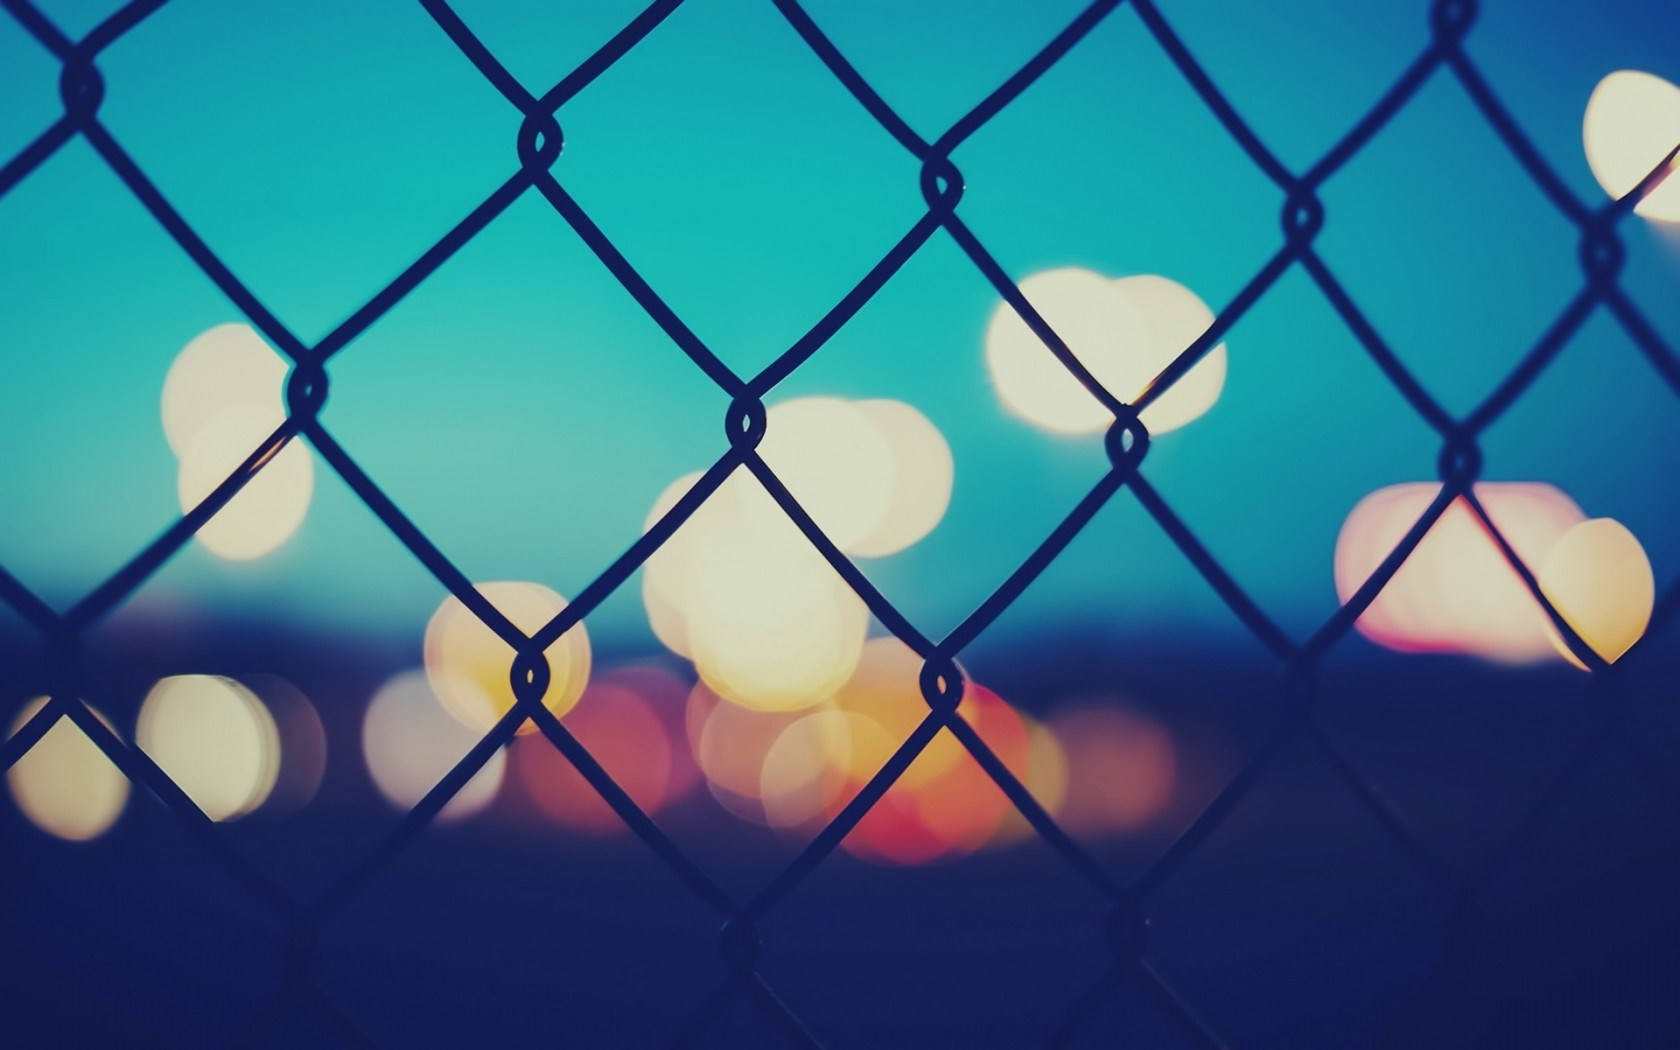 Fence Lights Bokeh